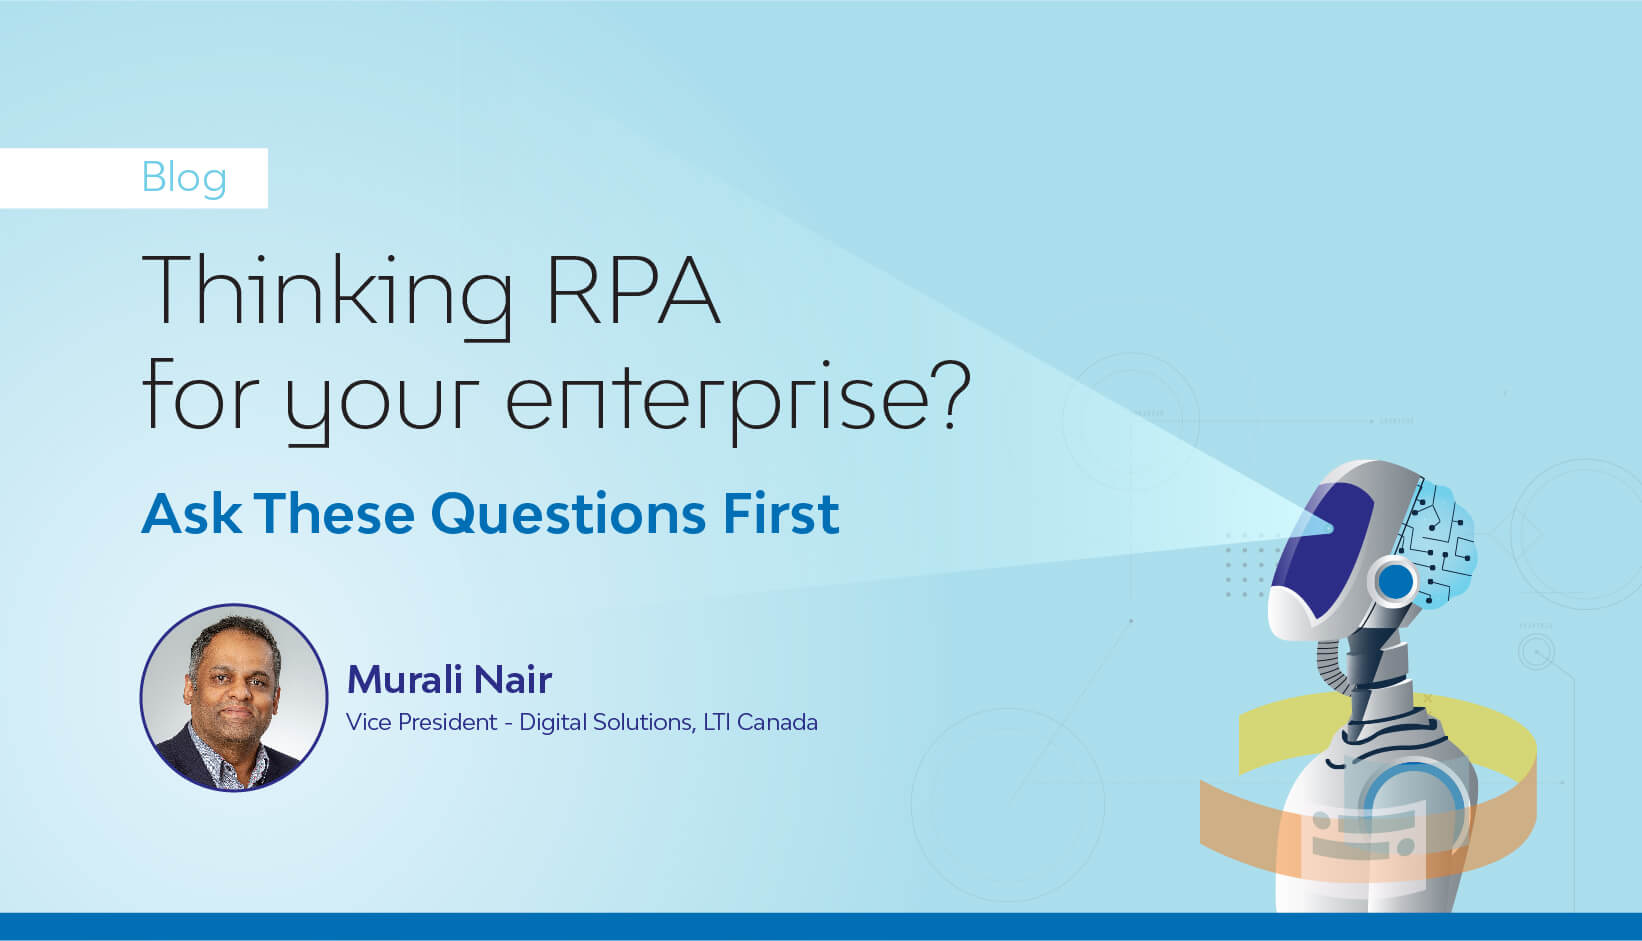 Thinking RPA for your enterprise